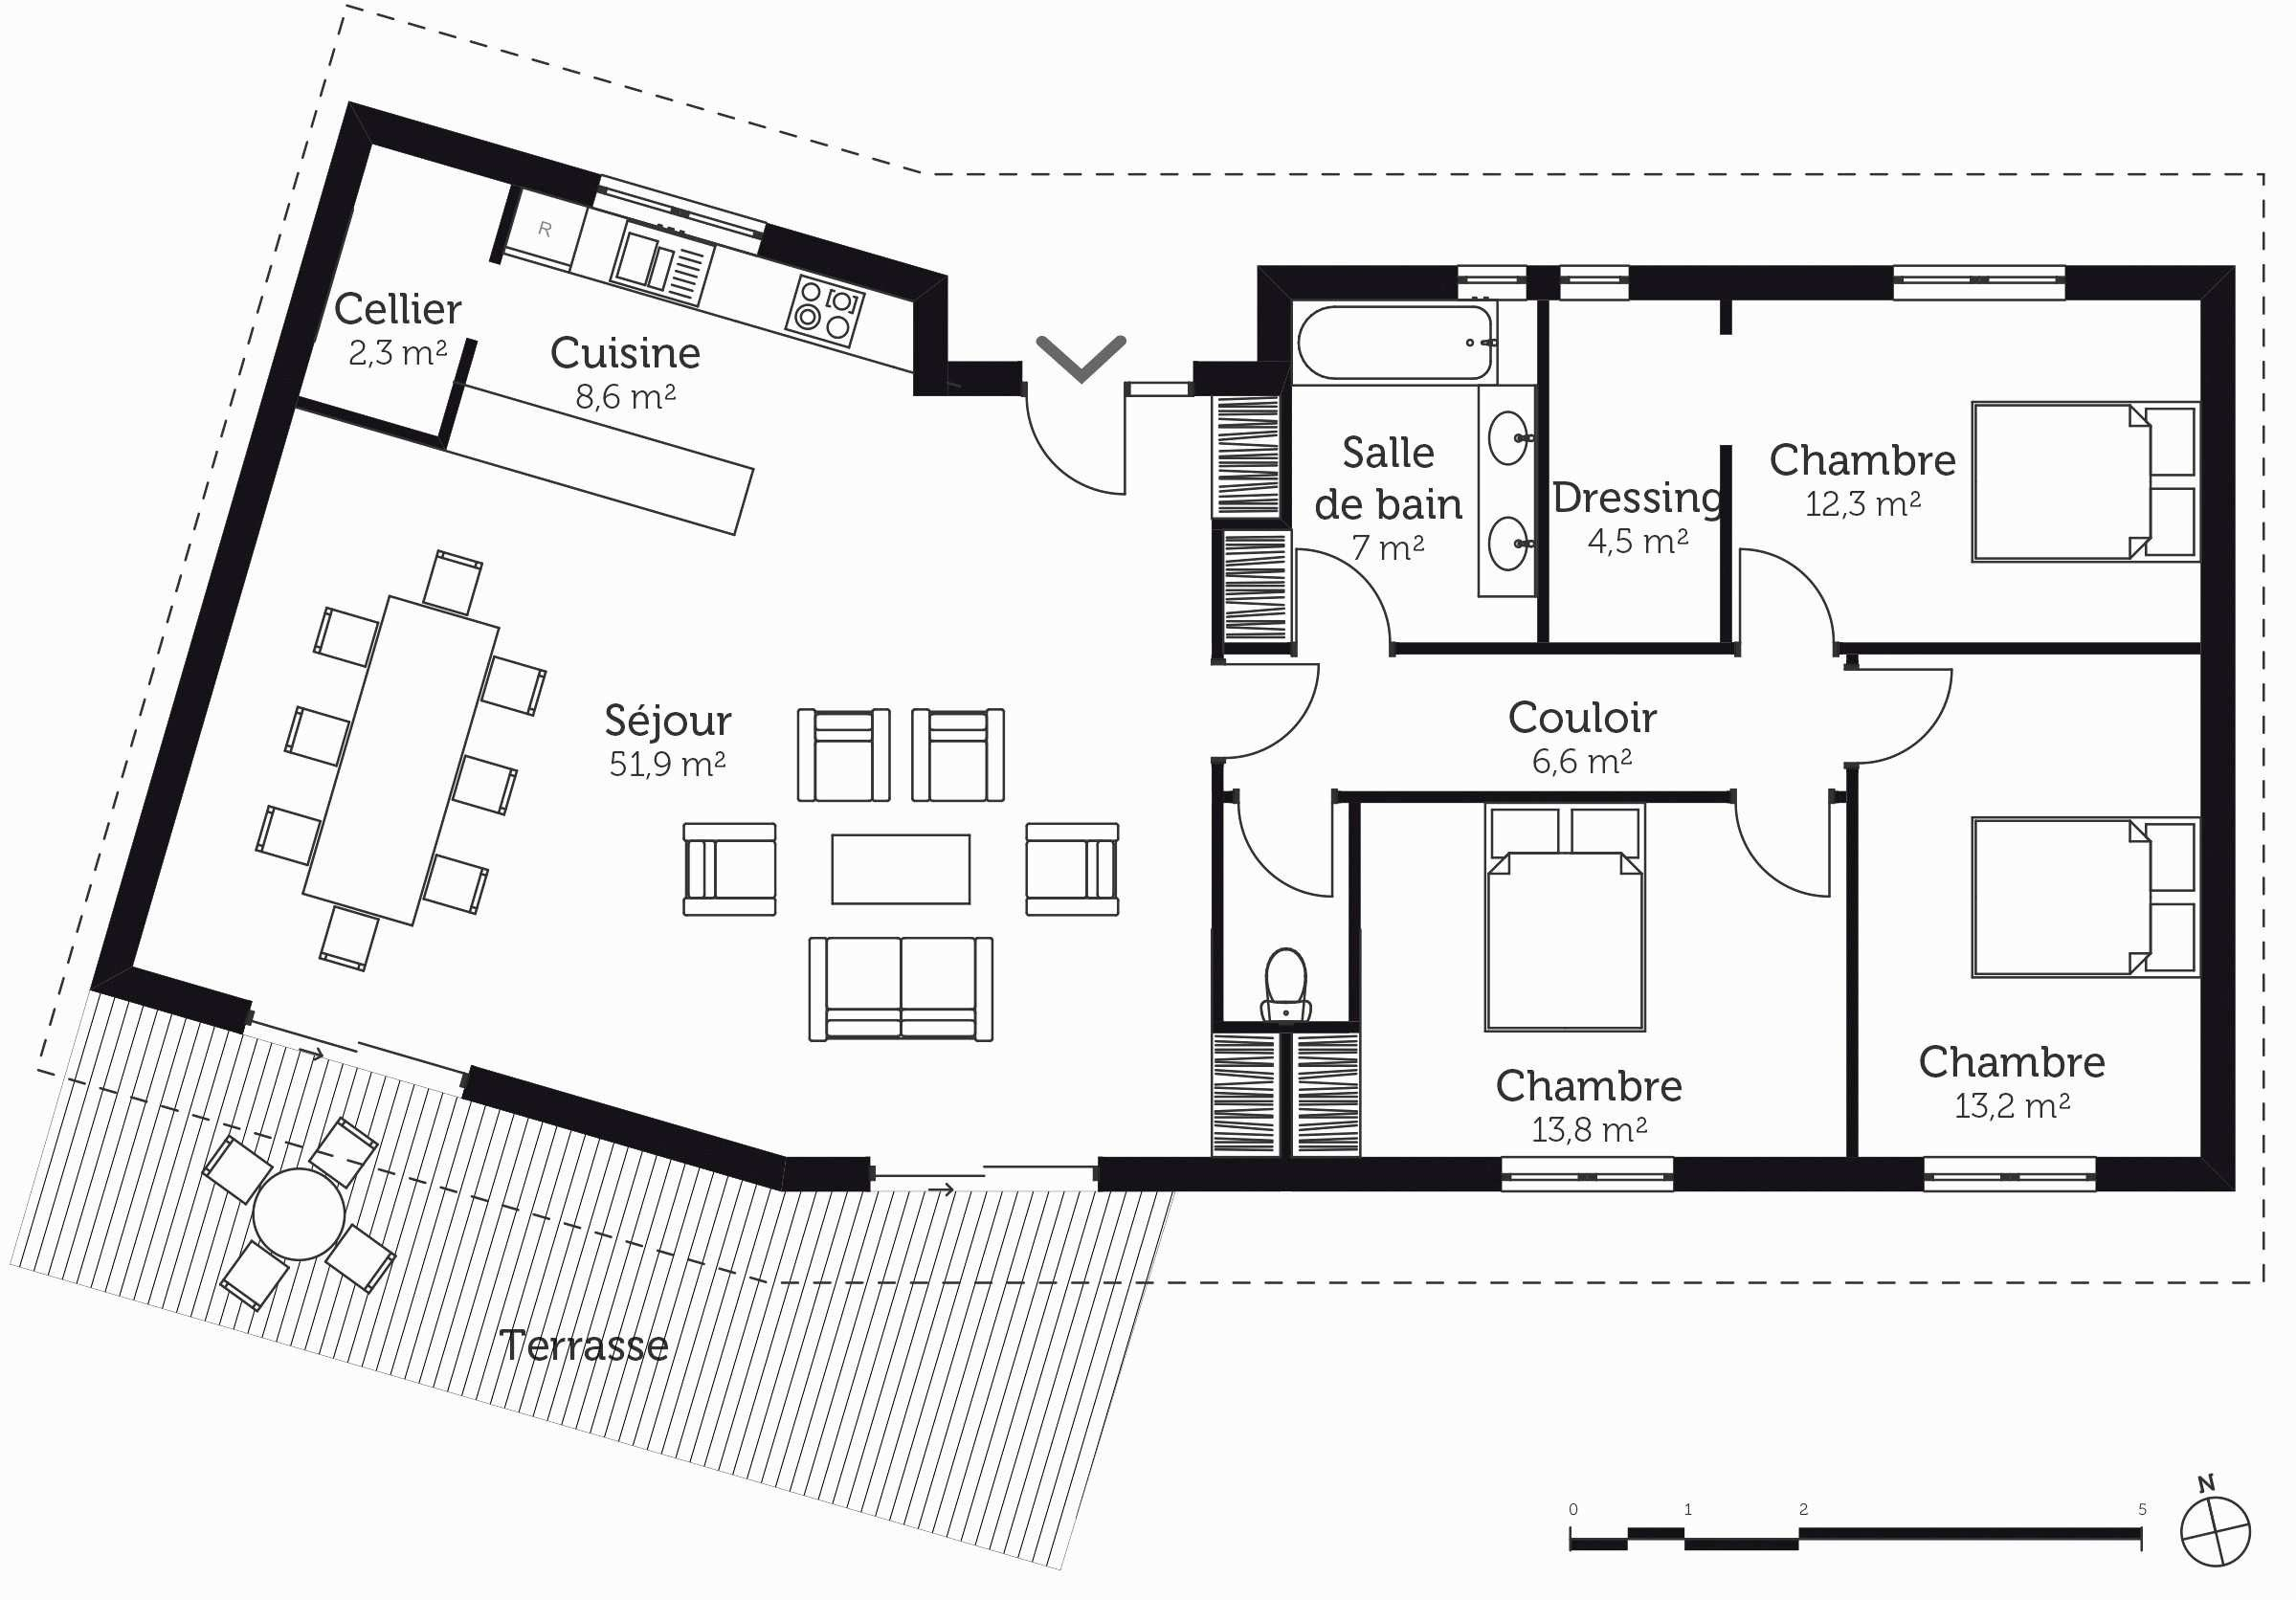 Awesome Plan Maison 100m2 Plein Pied 3 Chambres In 2021 House Plans How To Plan House Design